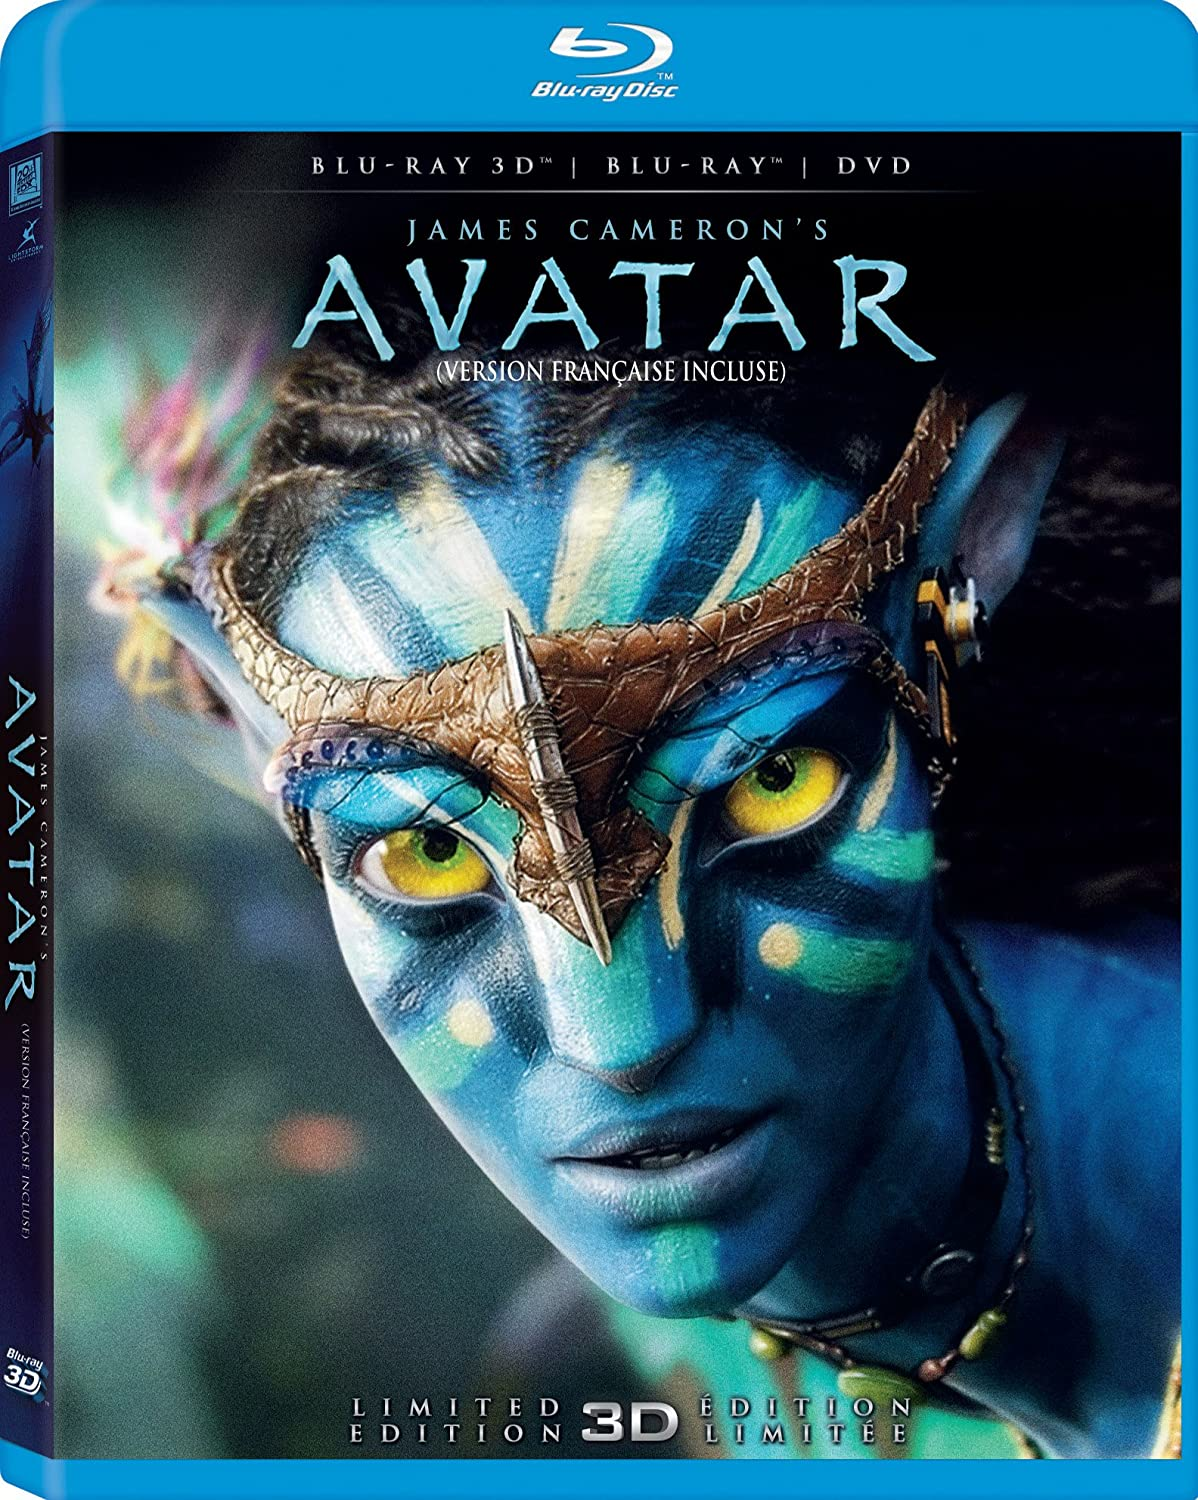 avatar limited d edition blu ray d blu ray dvd bilingual  avatar limited 3d edition blu ray 3d blu ray dvd bilingual amazon ca sam worthington dvd